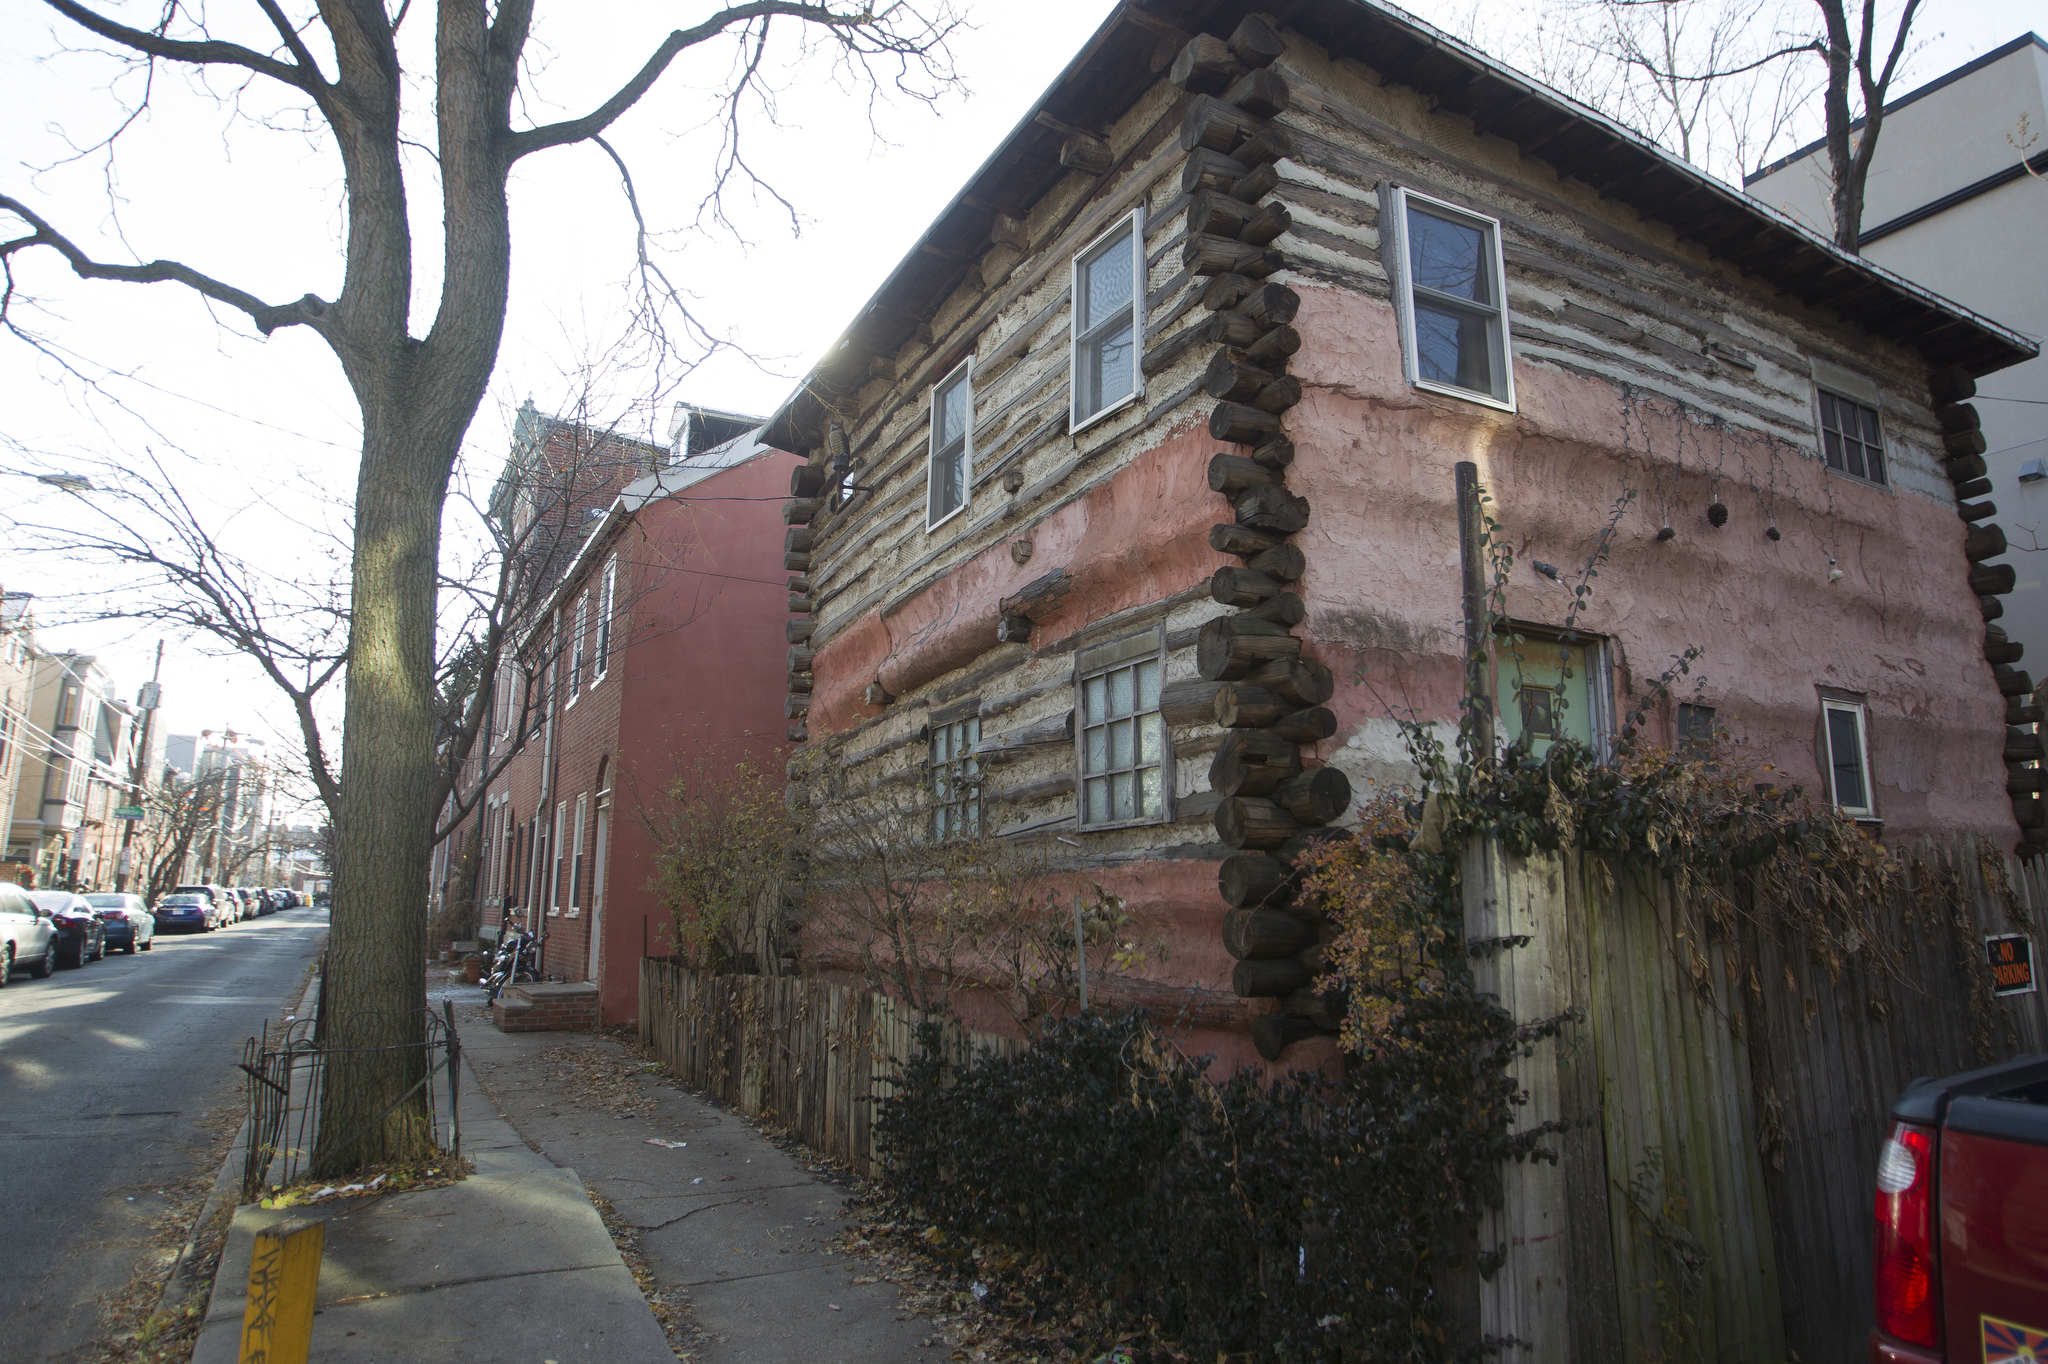 Jeff Thomas built his log cabin in the middle of Northern Liberties in the 1980s between recently built brick row houses.